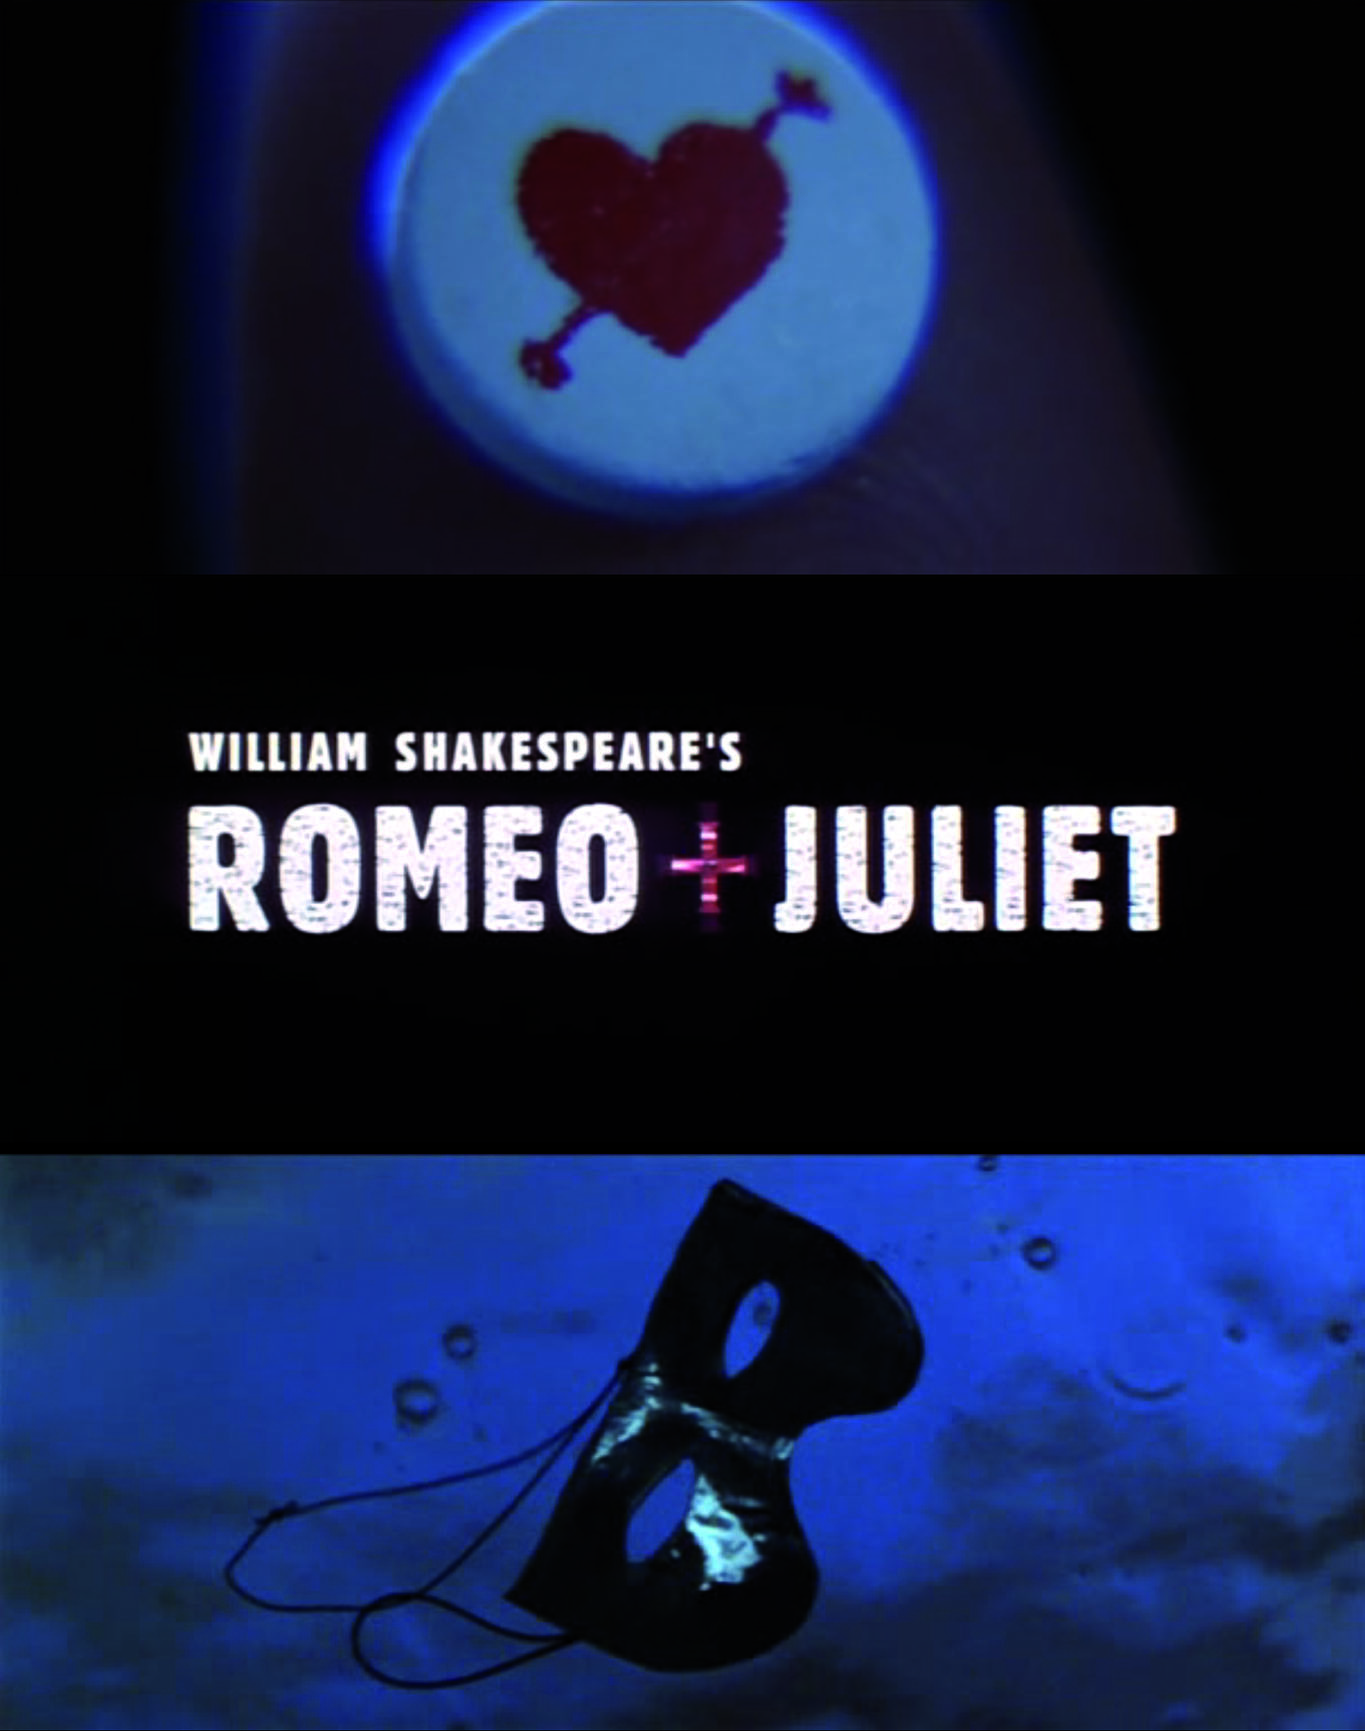 romeo and juliet directed by baz luhrmann essay 1621 words - 6 pages baz luhrmann's film adaptation of romeo and juliet   zefferelli, the more traditional director, created his oscar winning version in 1968.